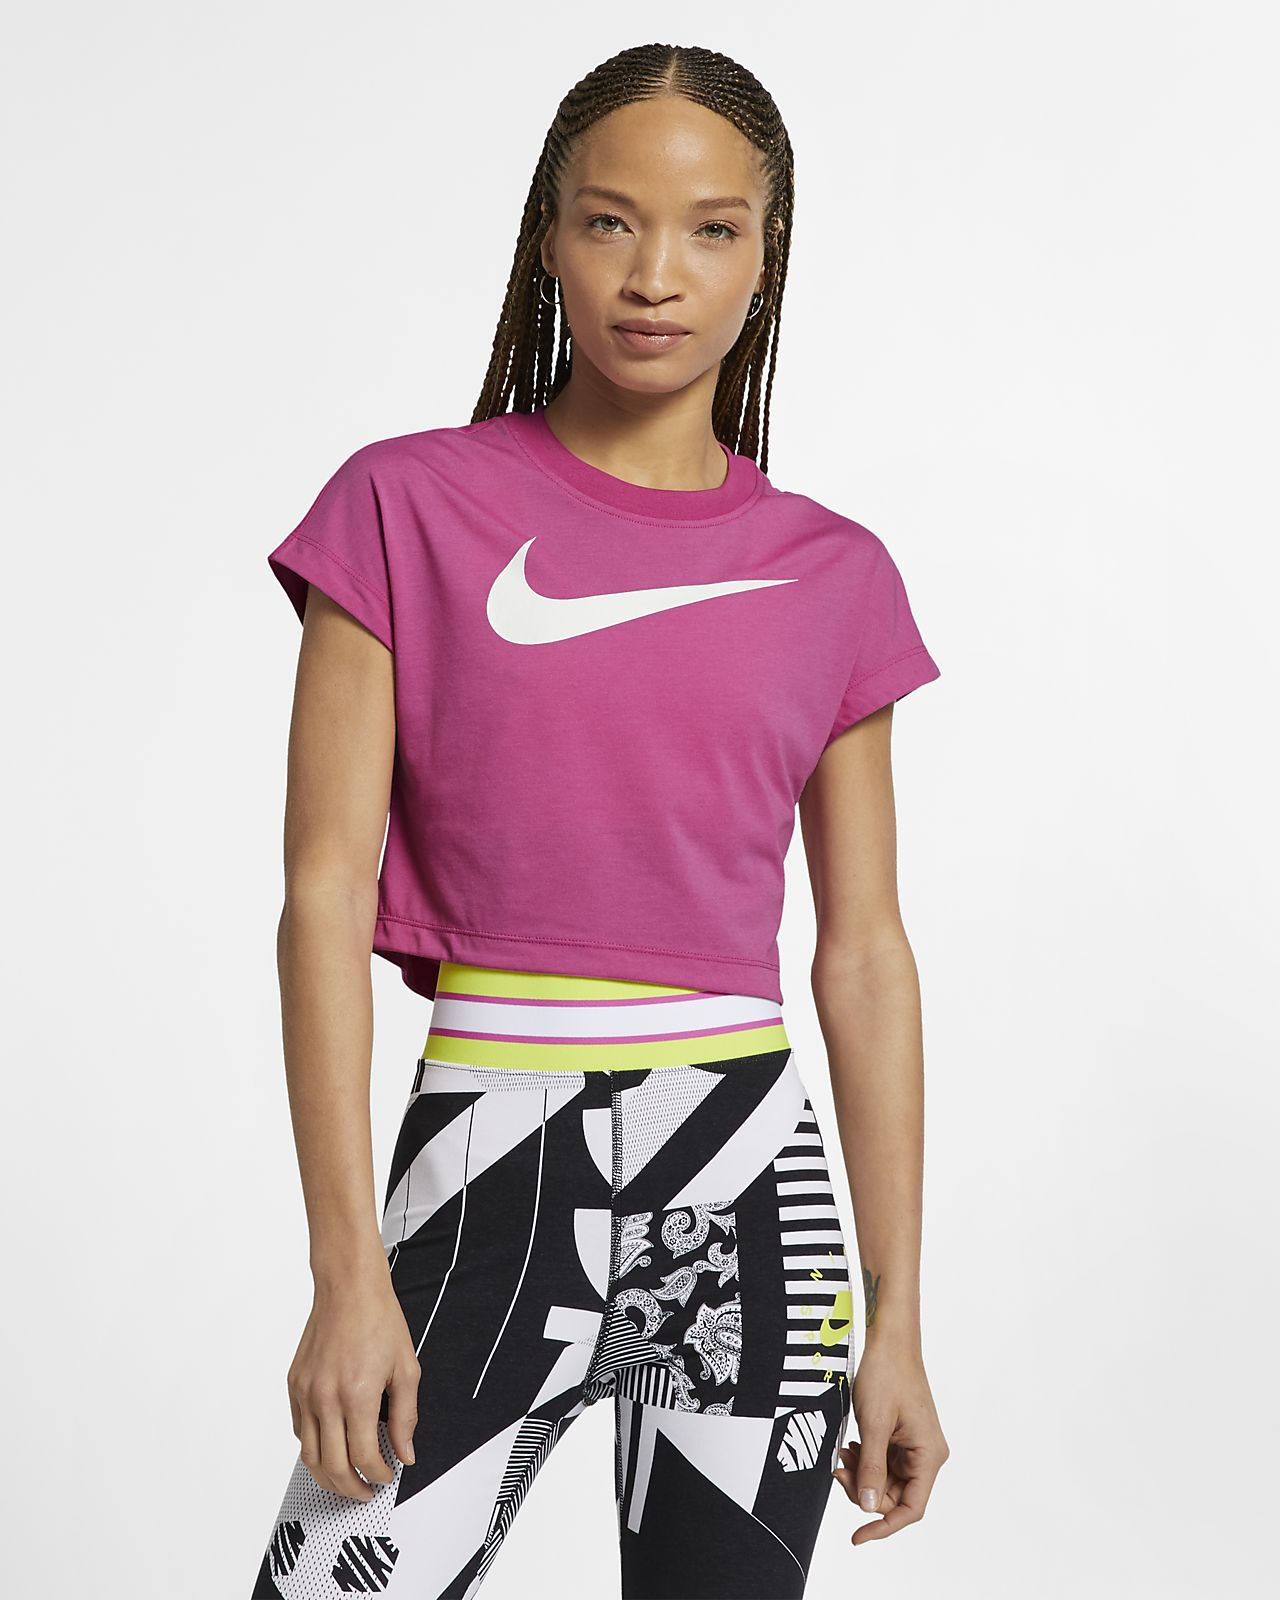 fff3e0f3cc4641 Nike Sportswear Women s Swoosh Short-Sleeve Crop Top. Nike.com IN